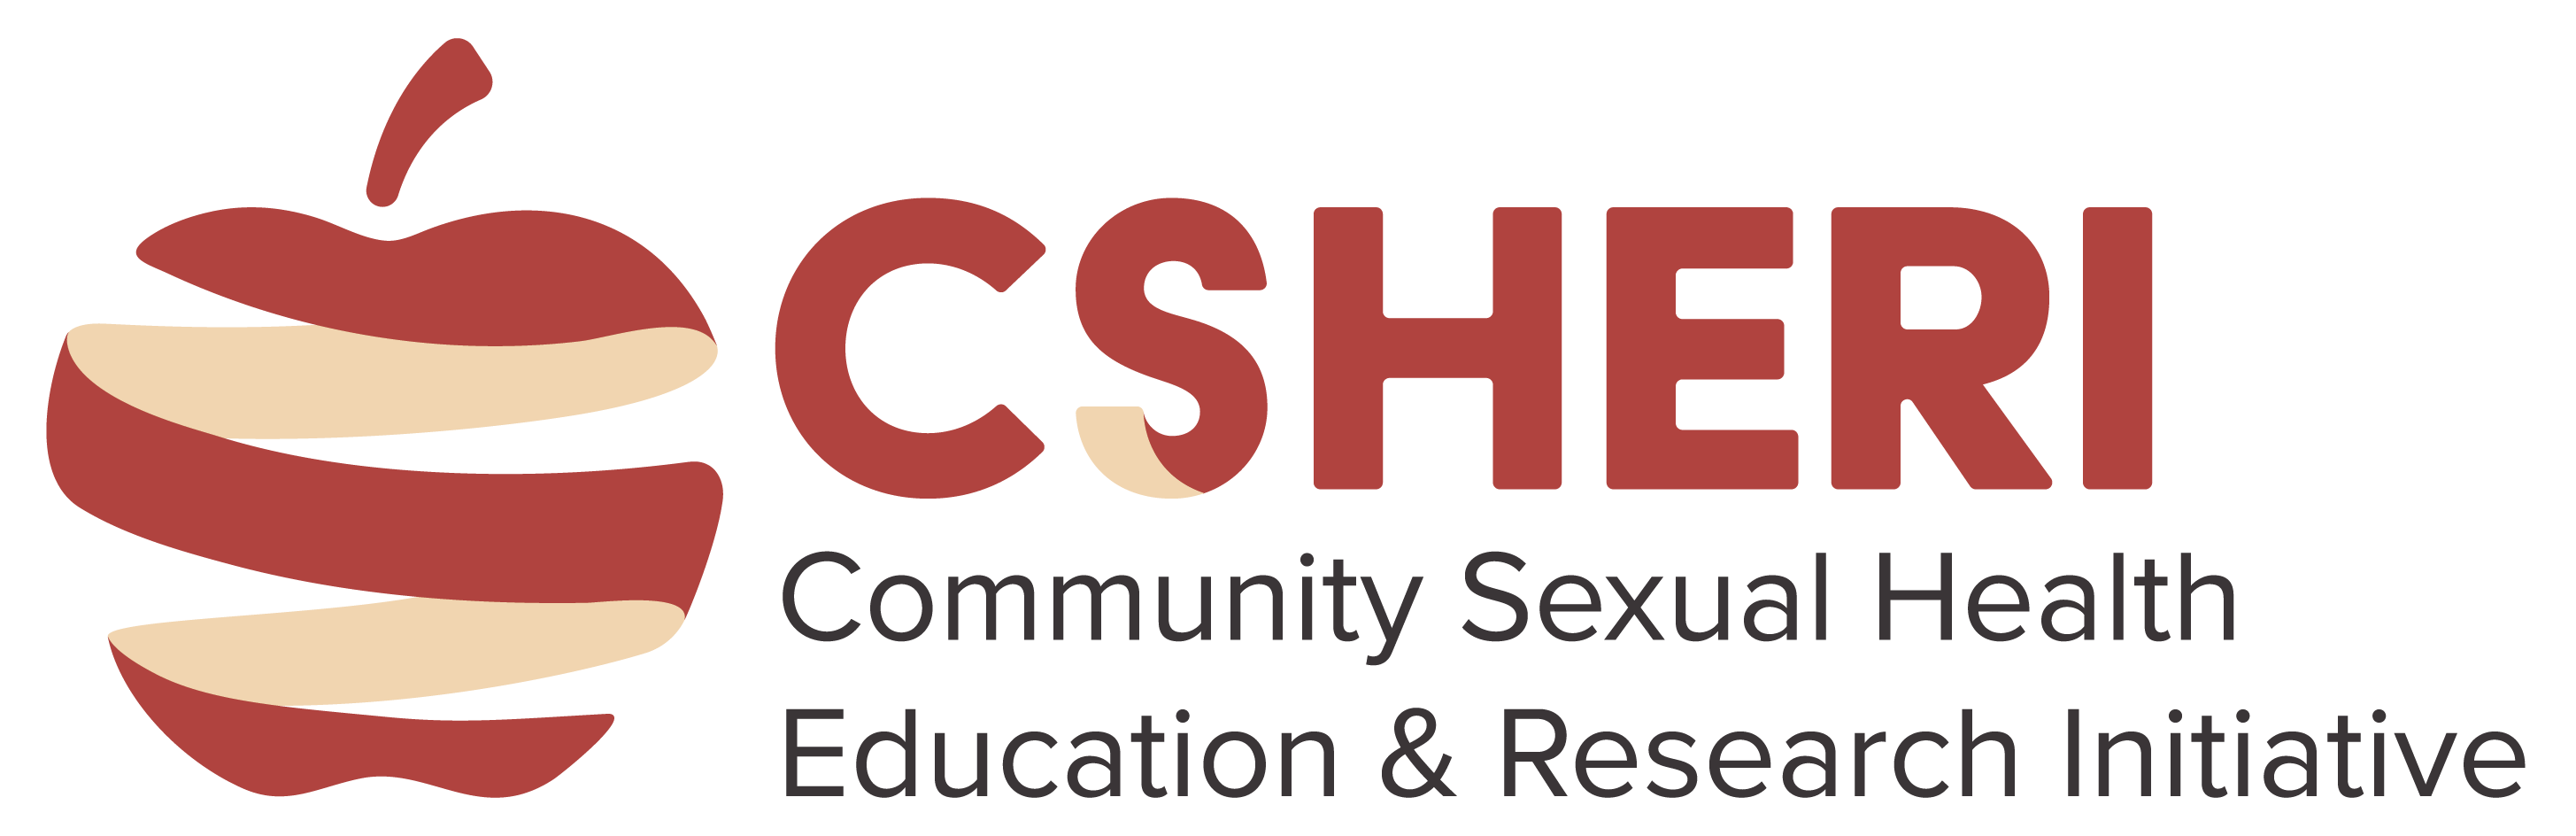 Community Sexual Health Education & Research Initiative